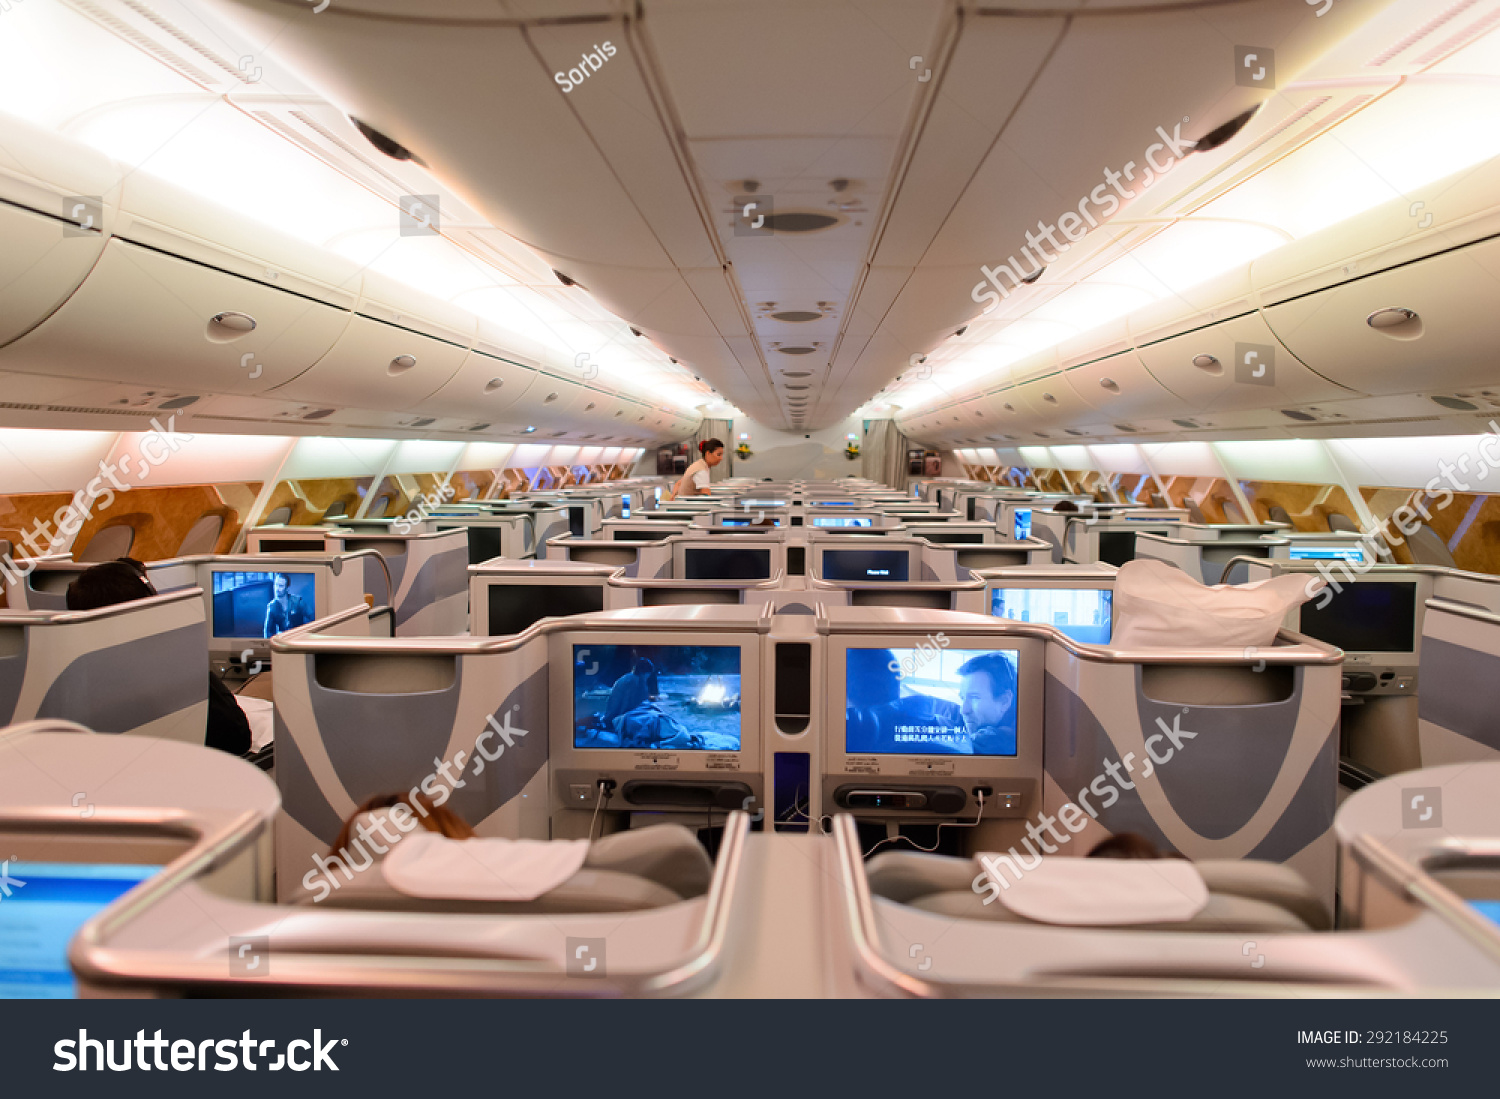 Hong kong june 18 2015 emirates stock photo 292184225 for Airbus a380 emirates interior